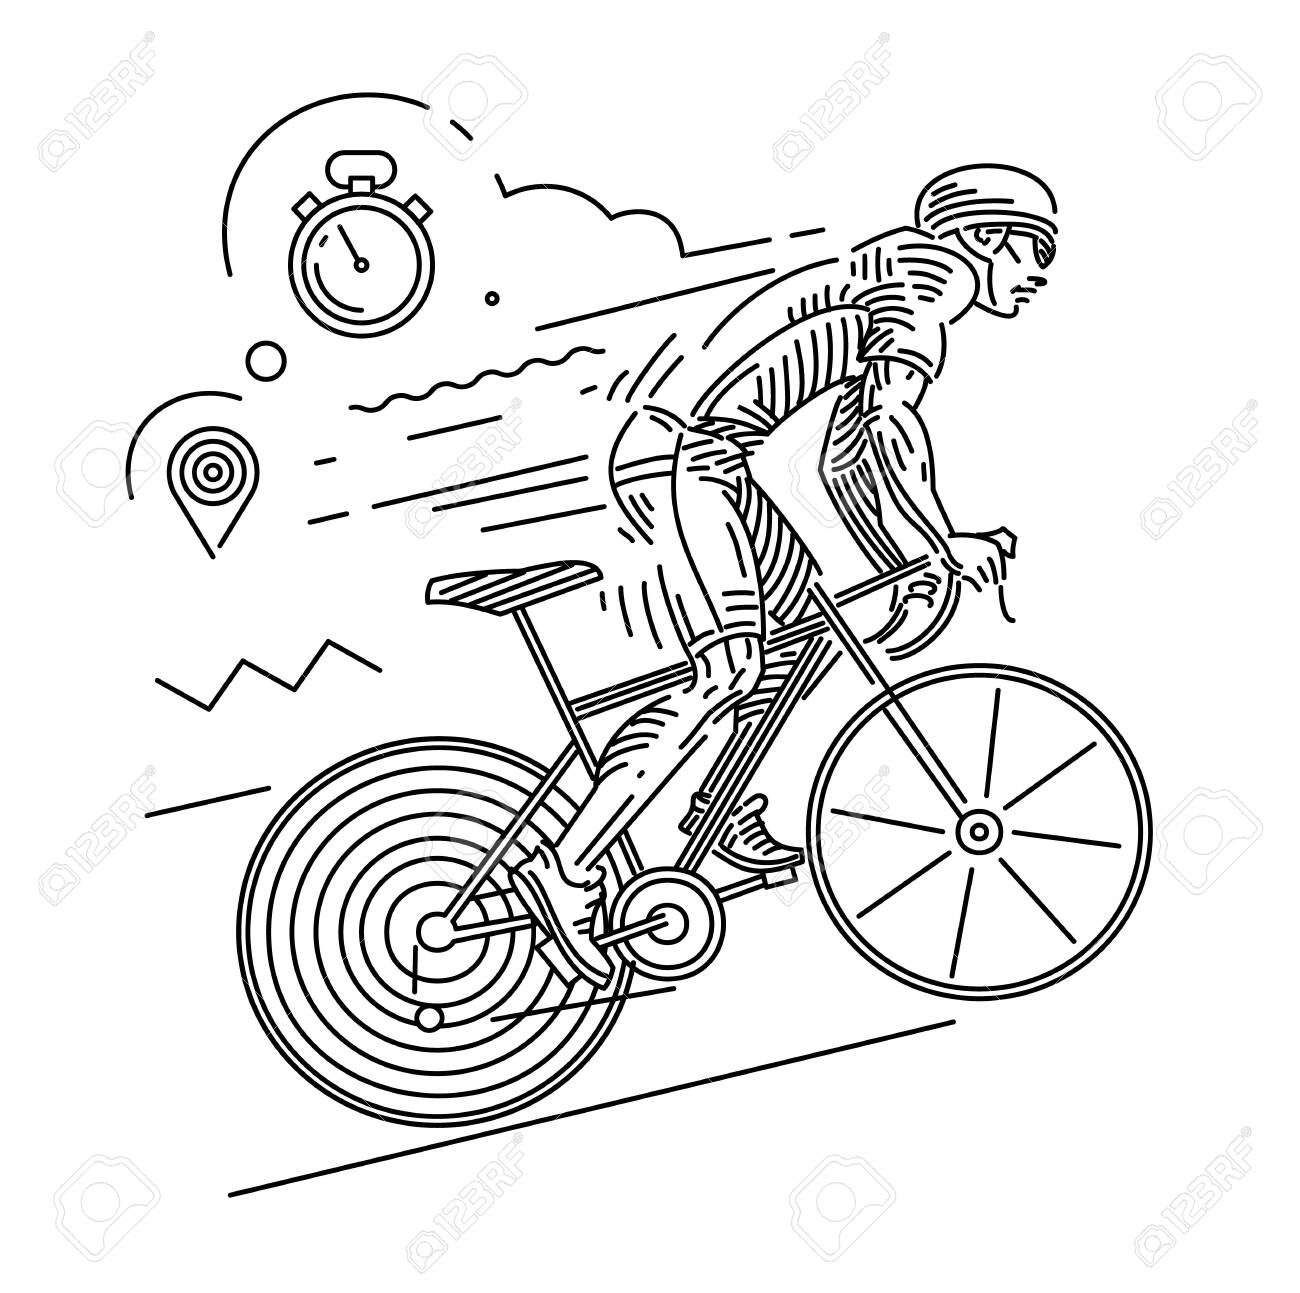 Cycle Race Dynamic Pose Vector Illustration On The Linear Outline Royalty Free Cliparts Vectors And Stock Illustration Image 124114400